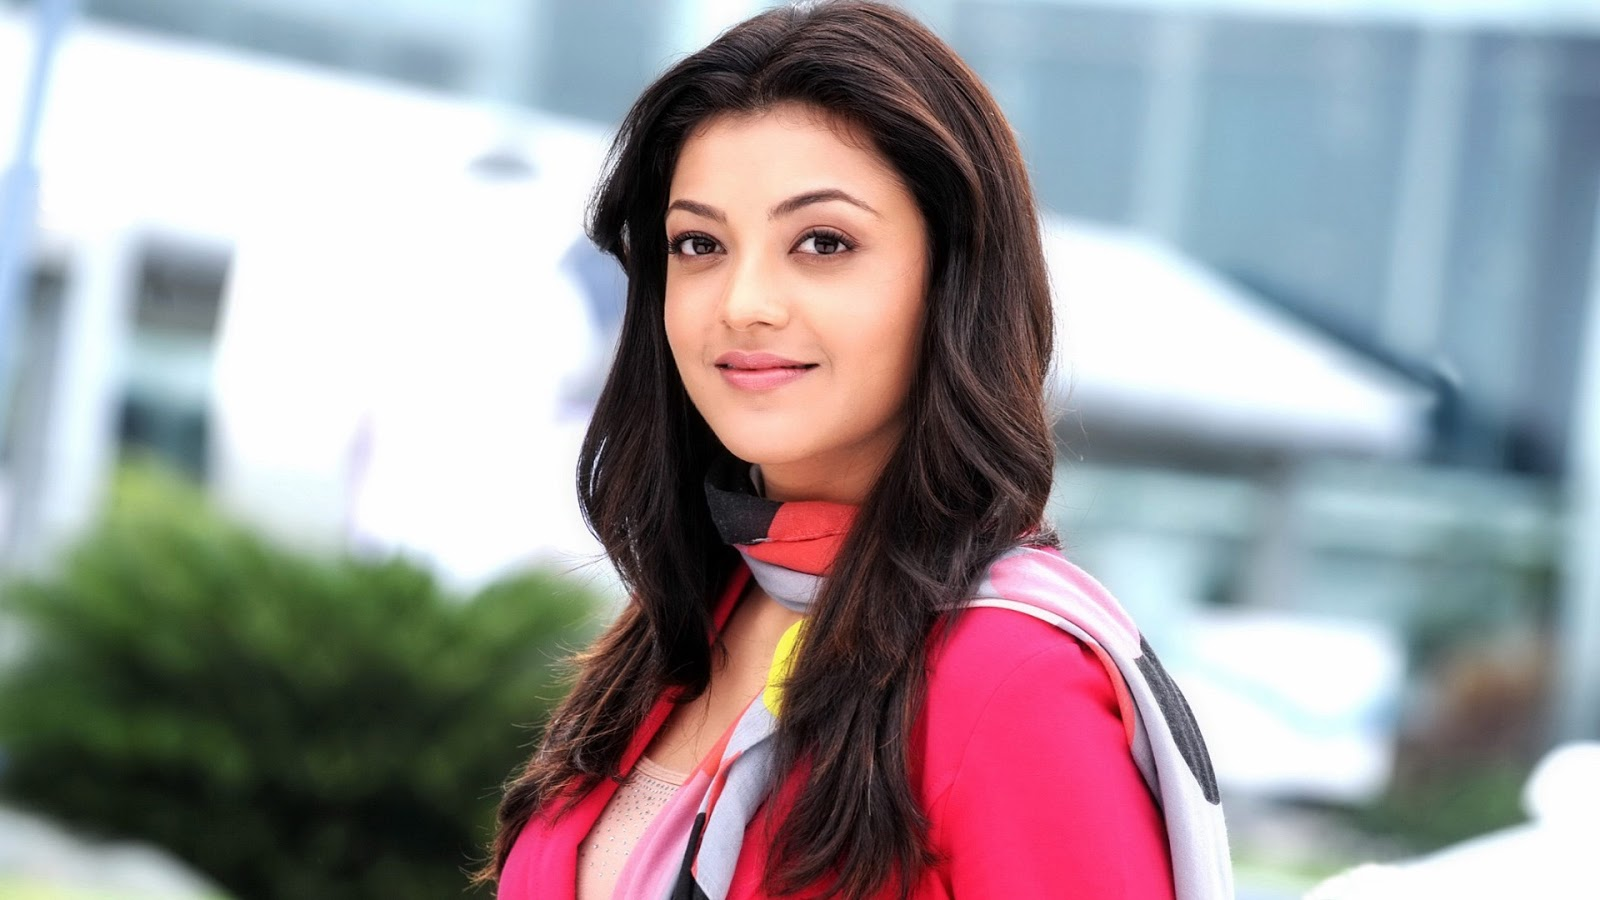 Top Kajal Agrawal Wallpapers Hd Wallpapers Hd